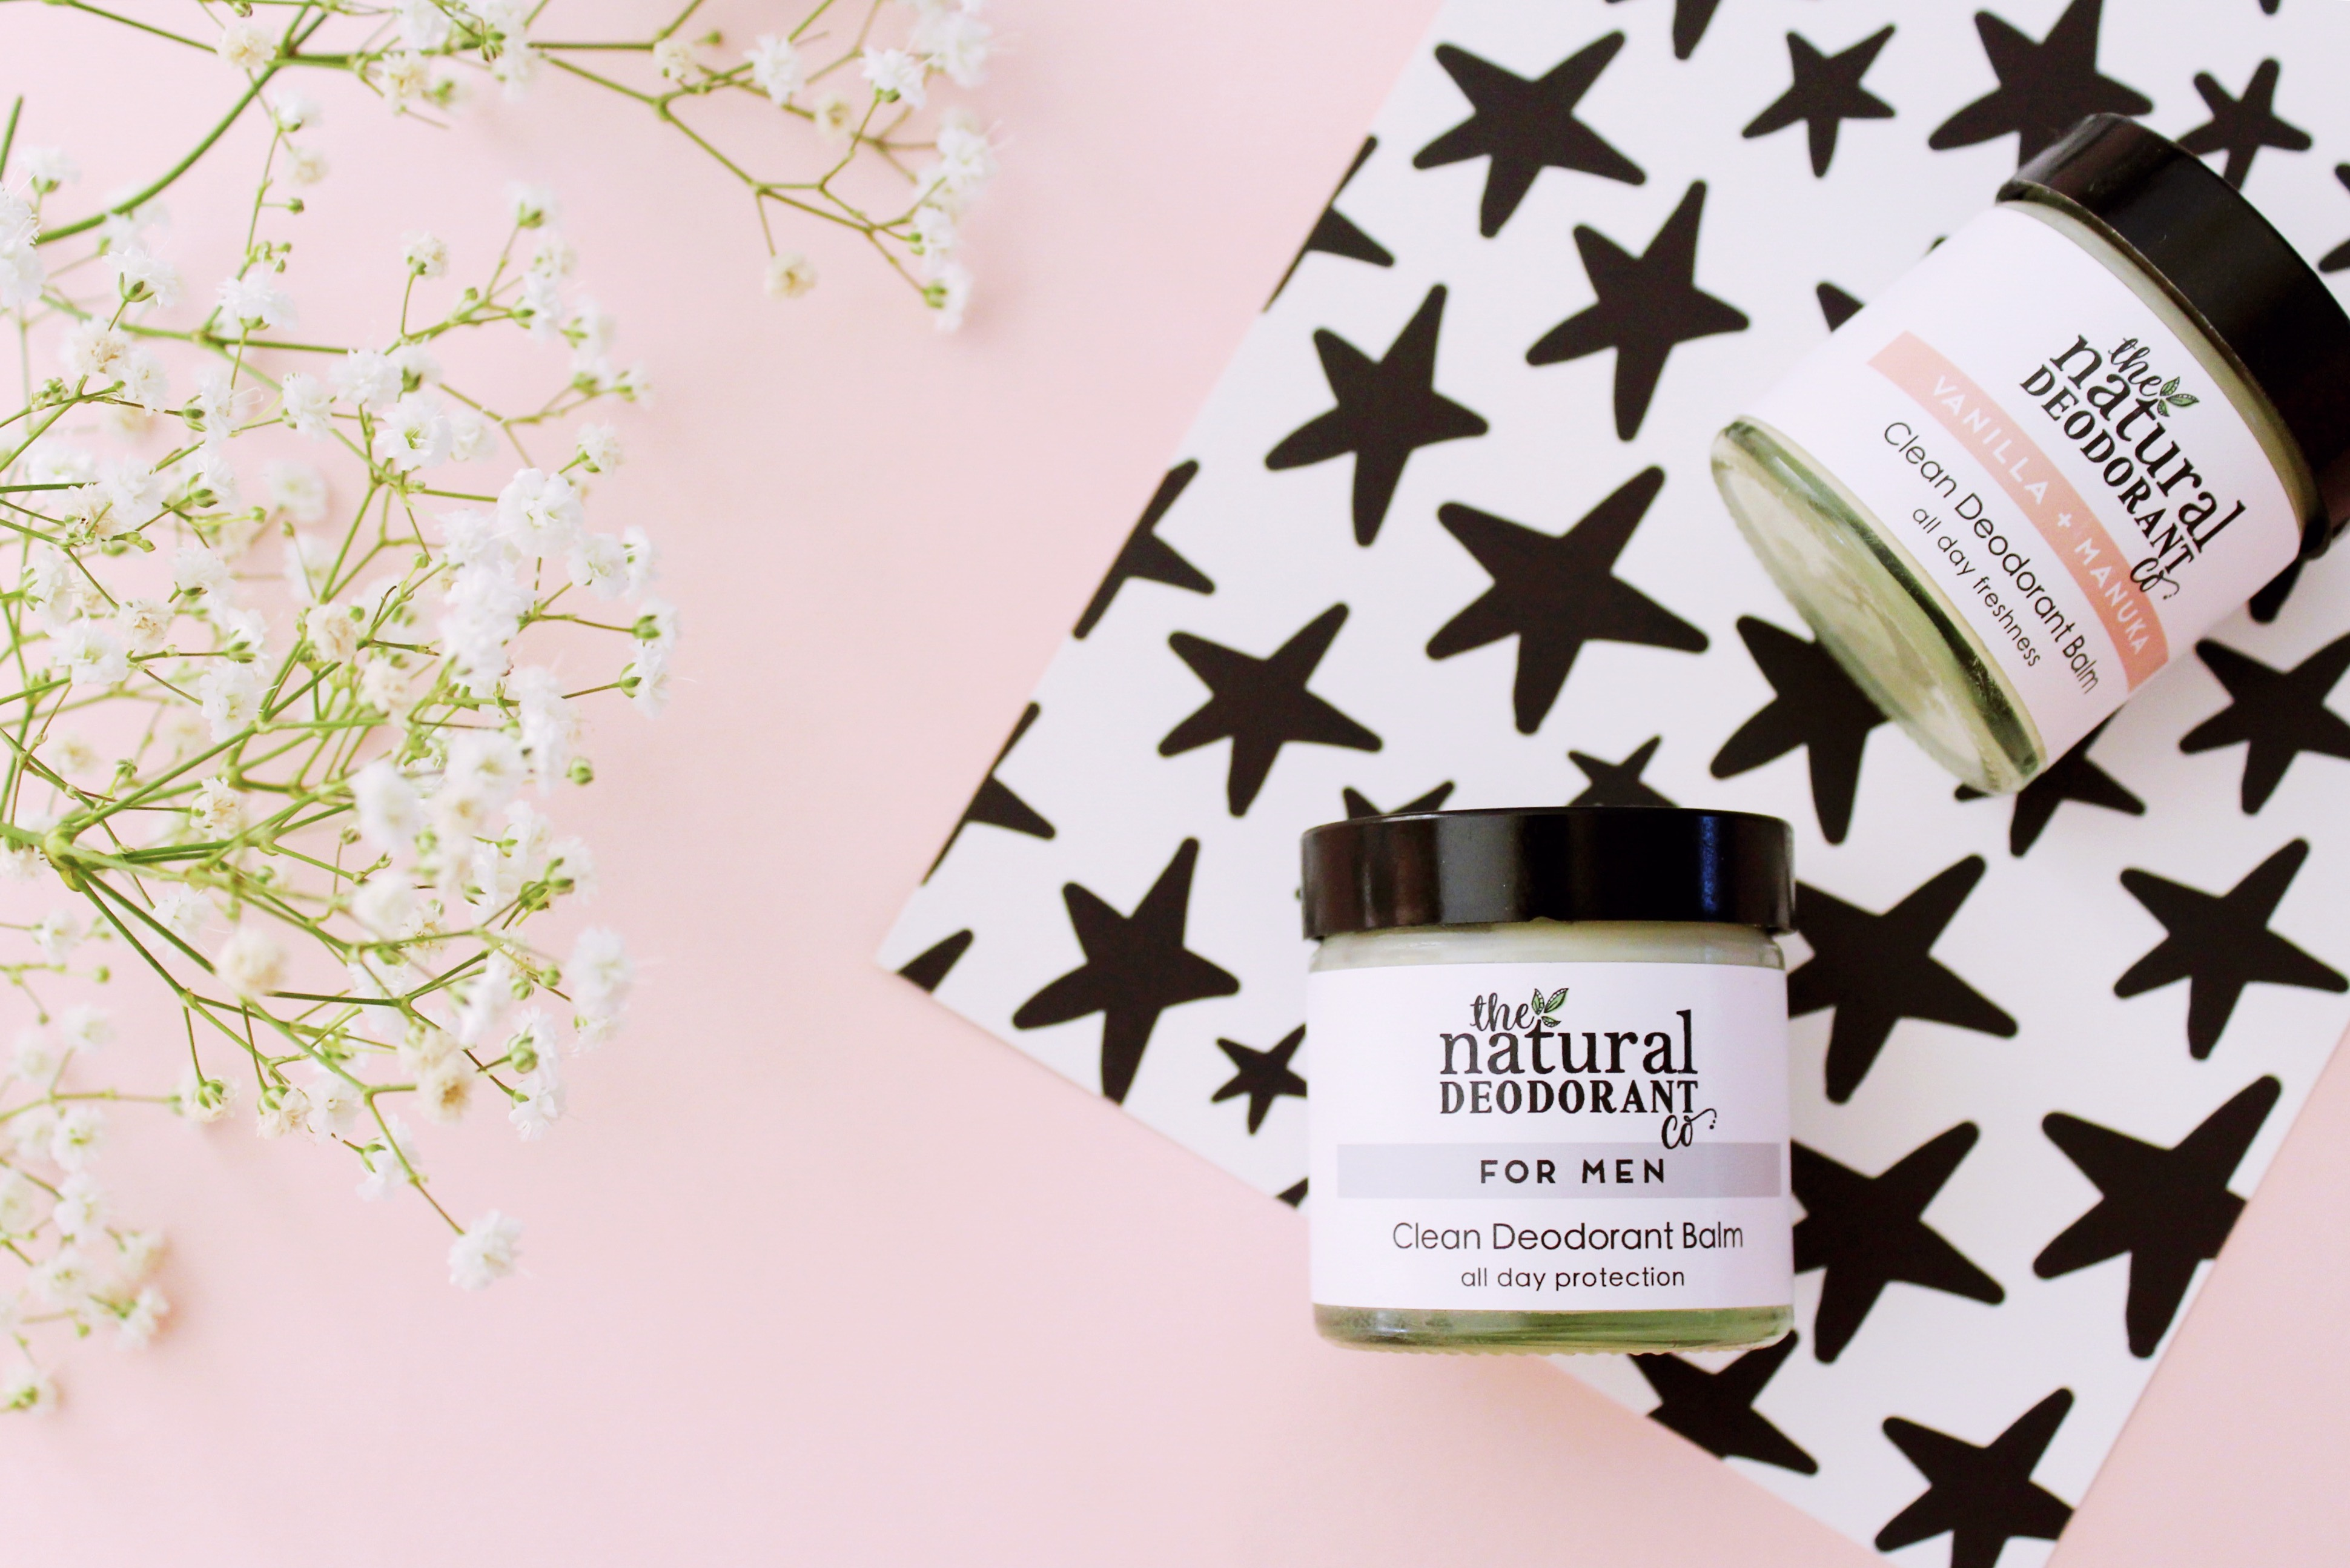 all-natural deodorant in the UK